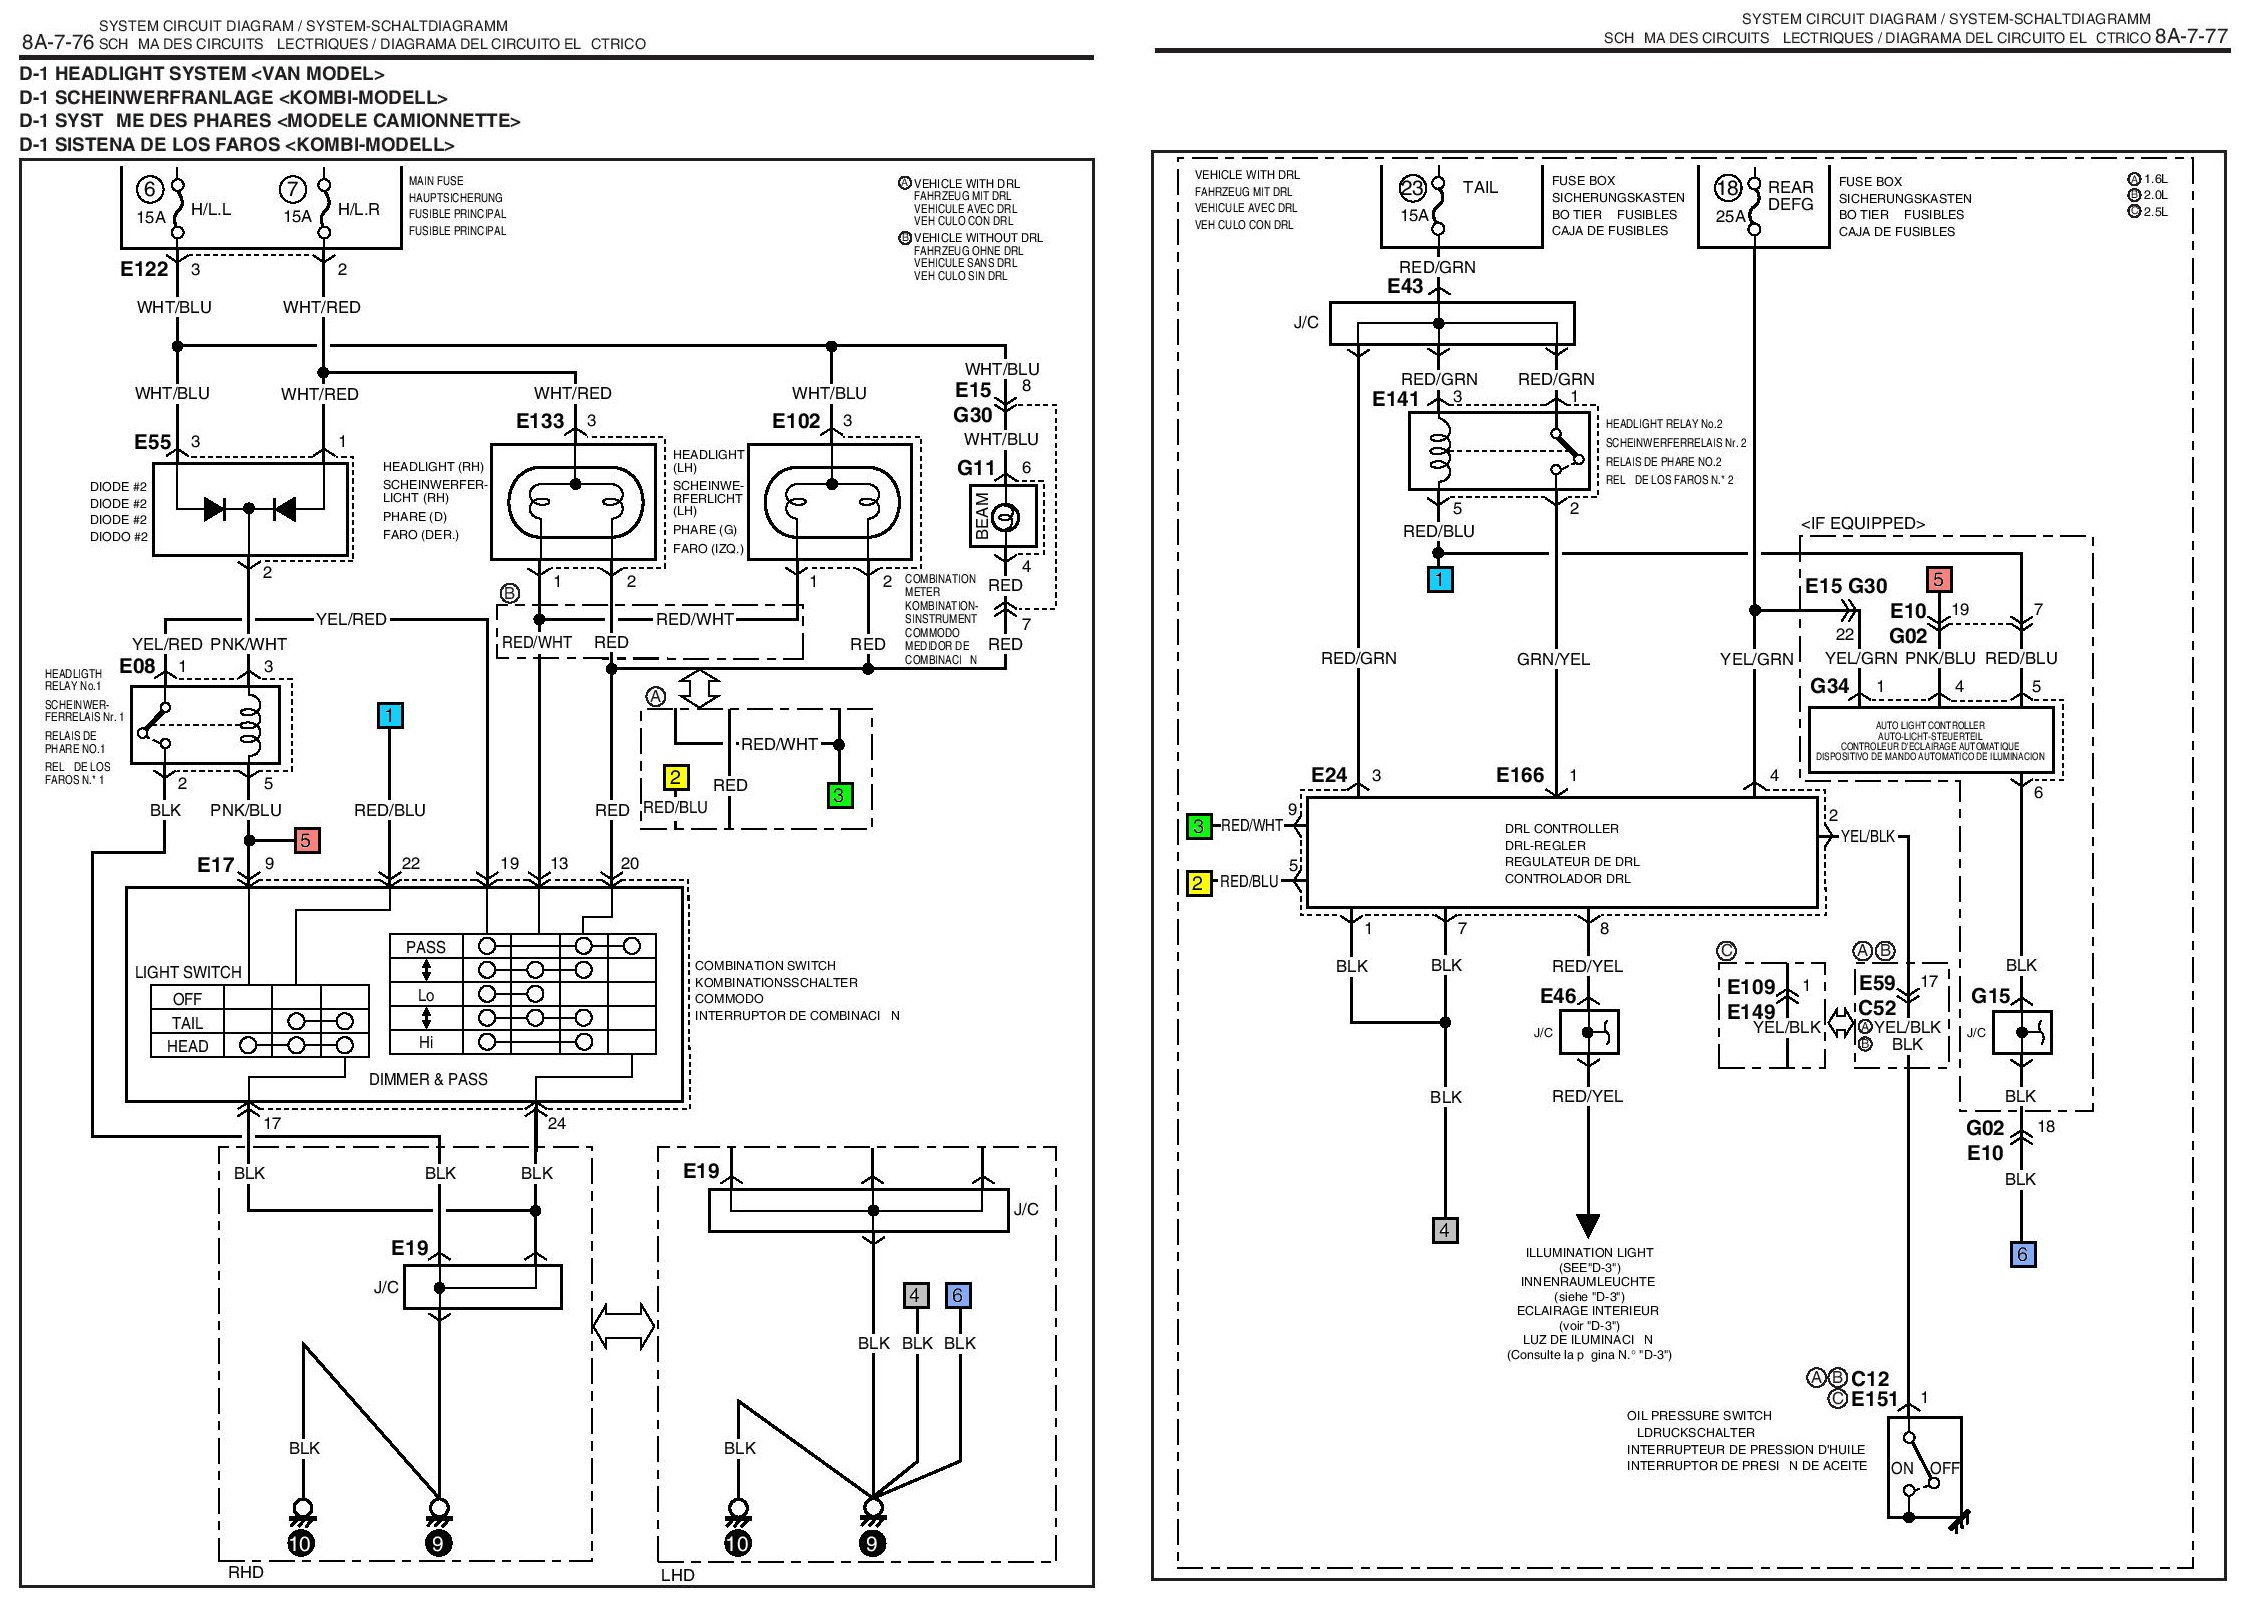 Ac Wiring Diagram For 2006 Suzuki Grand Vitara Data 2001 Chrysler Pt Cruiser Door Schematic Library Dodge Viper